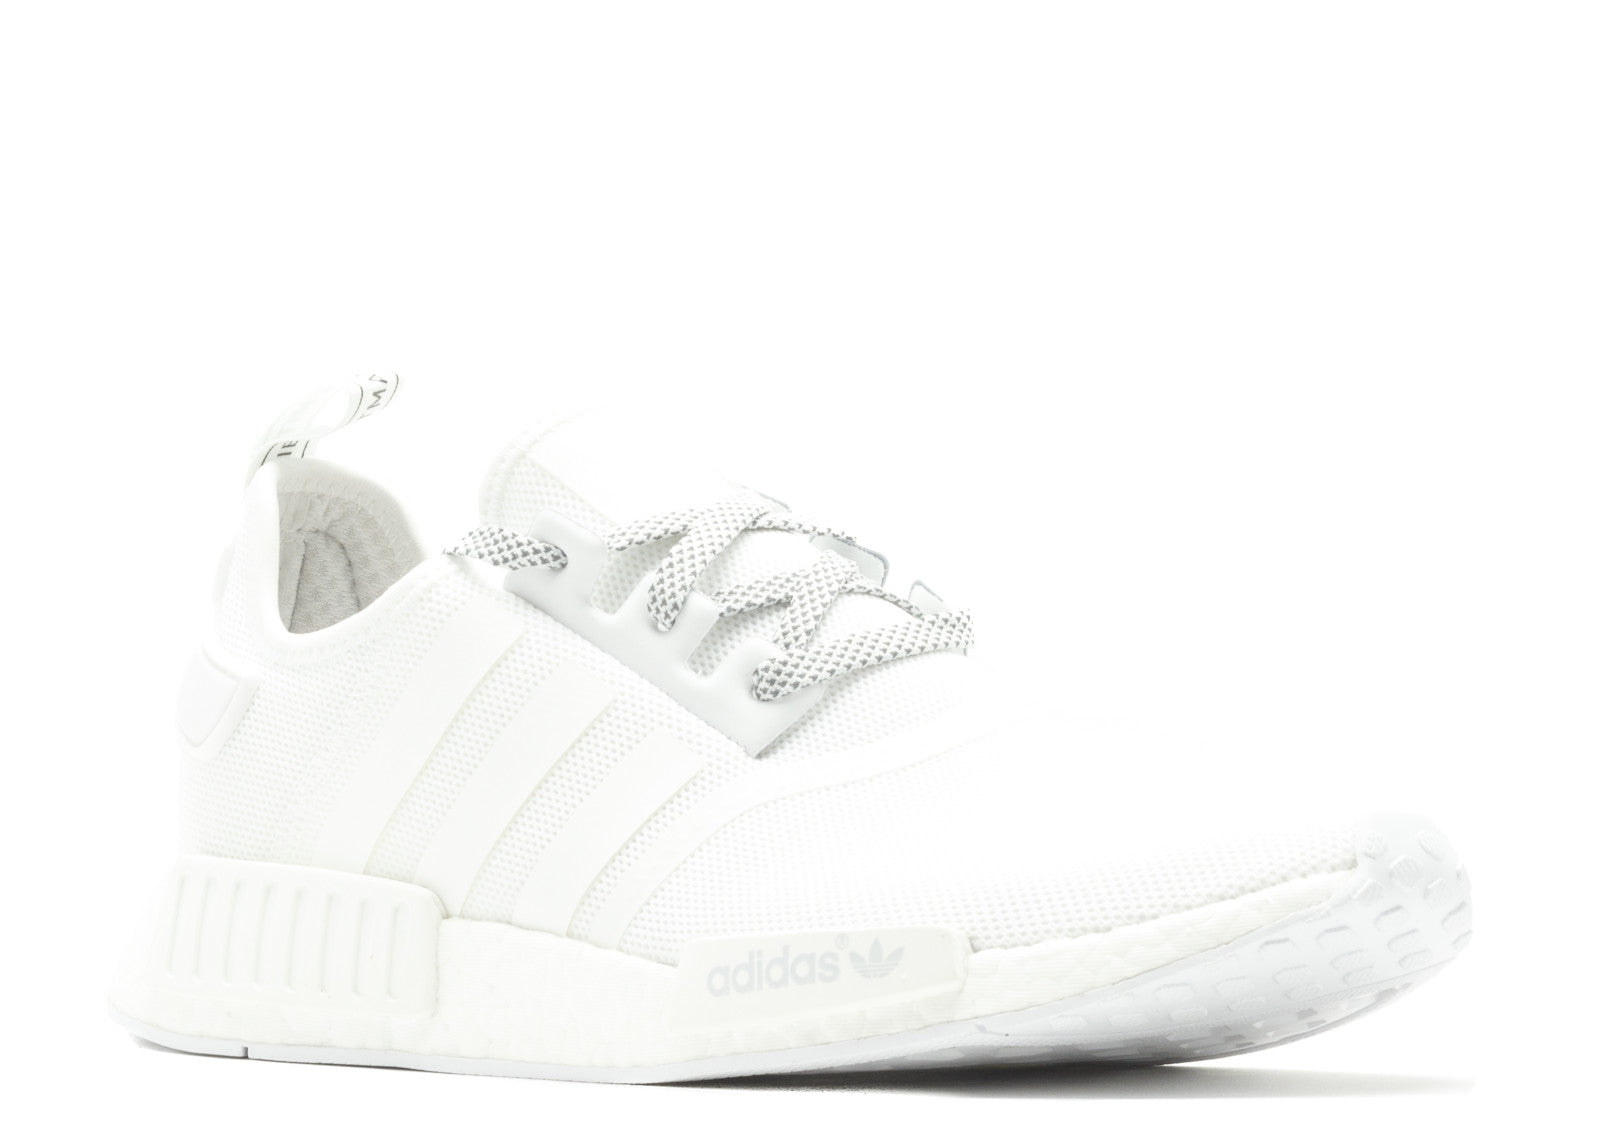 Adidas NMD R1 'White Reflective'